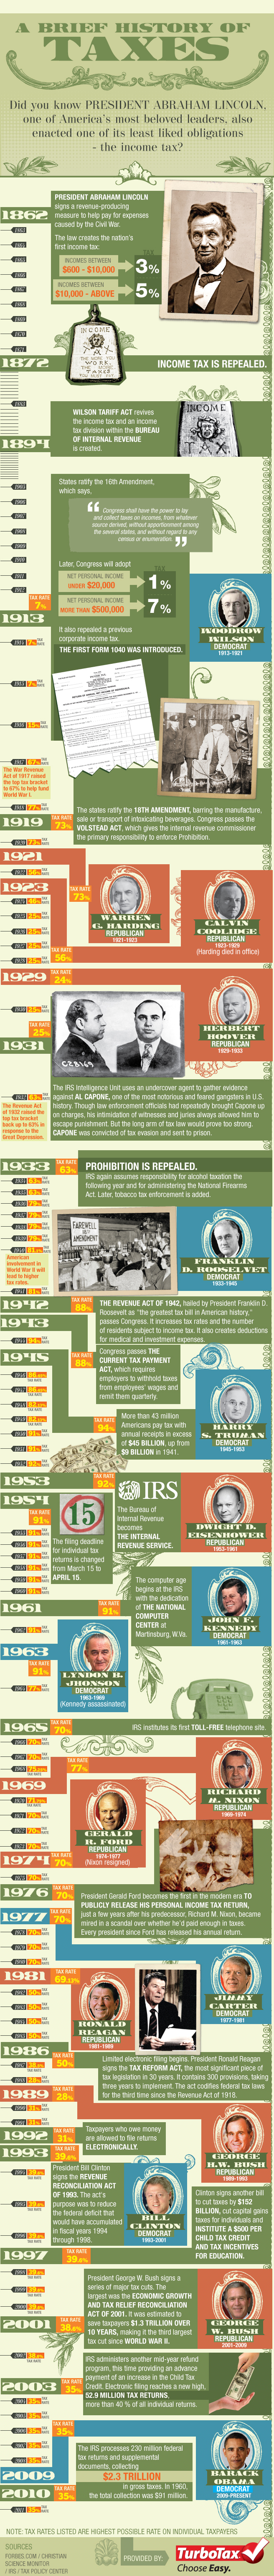 history-of-US-taxes-infographic-657.jpg